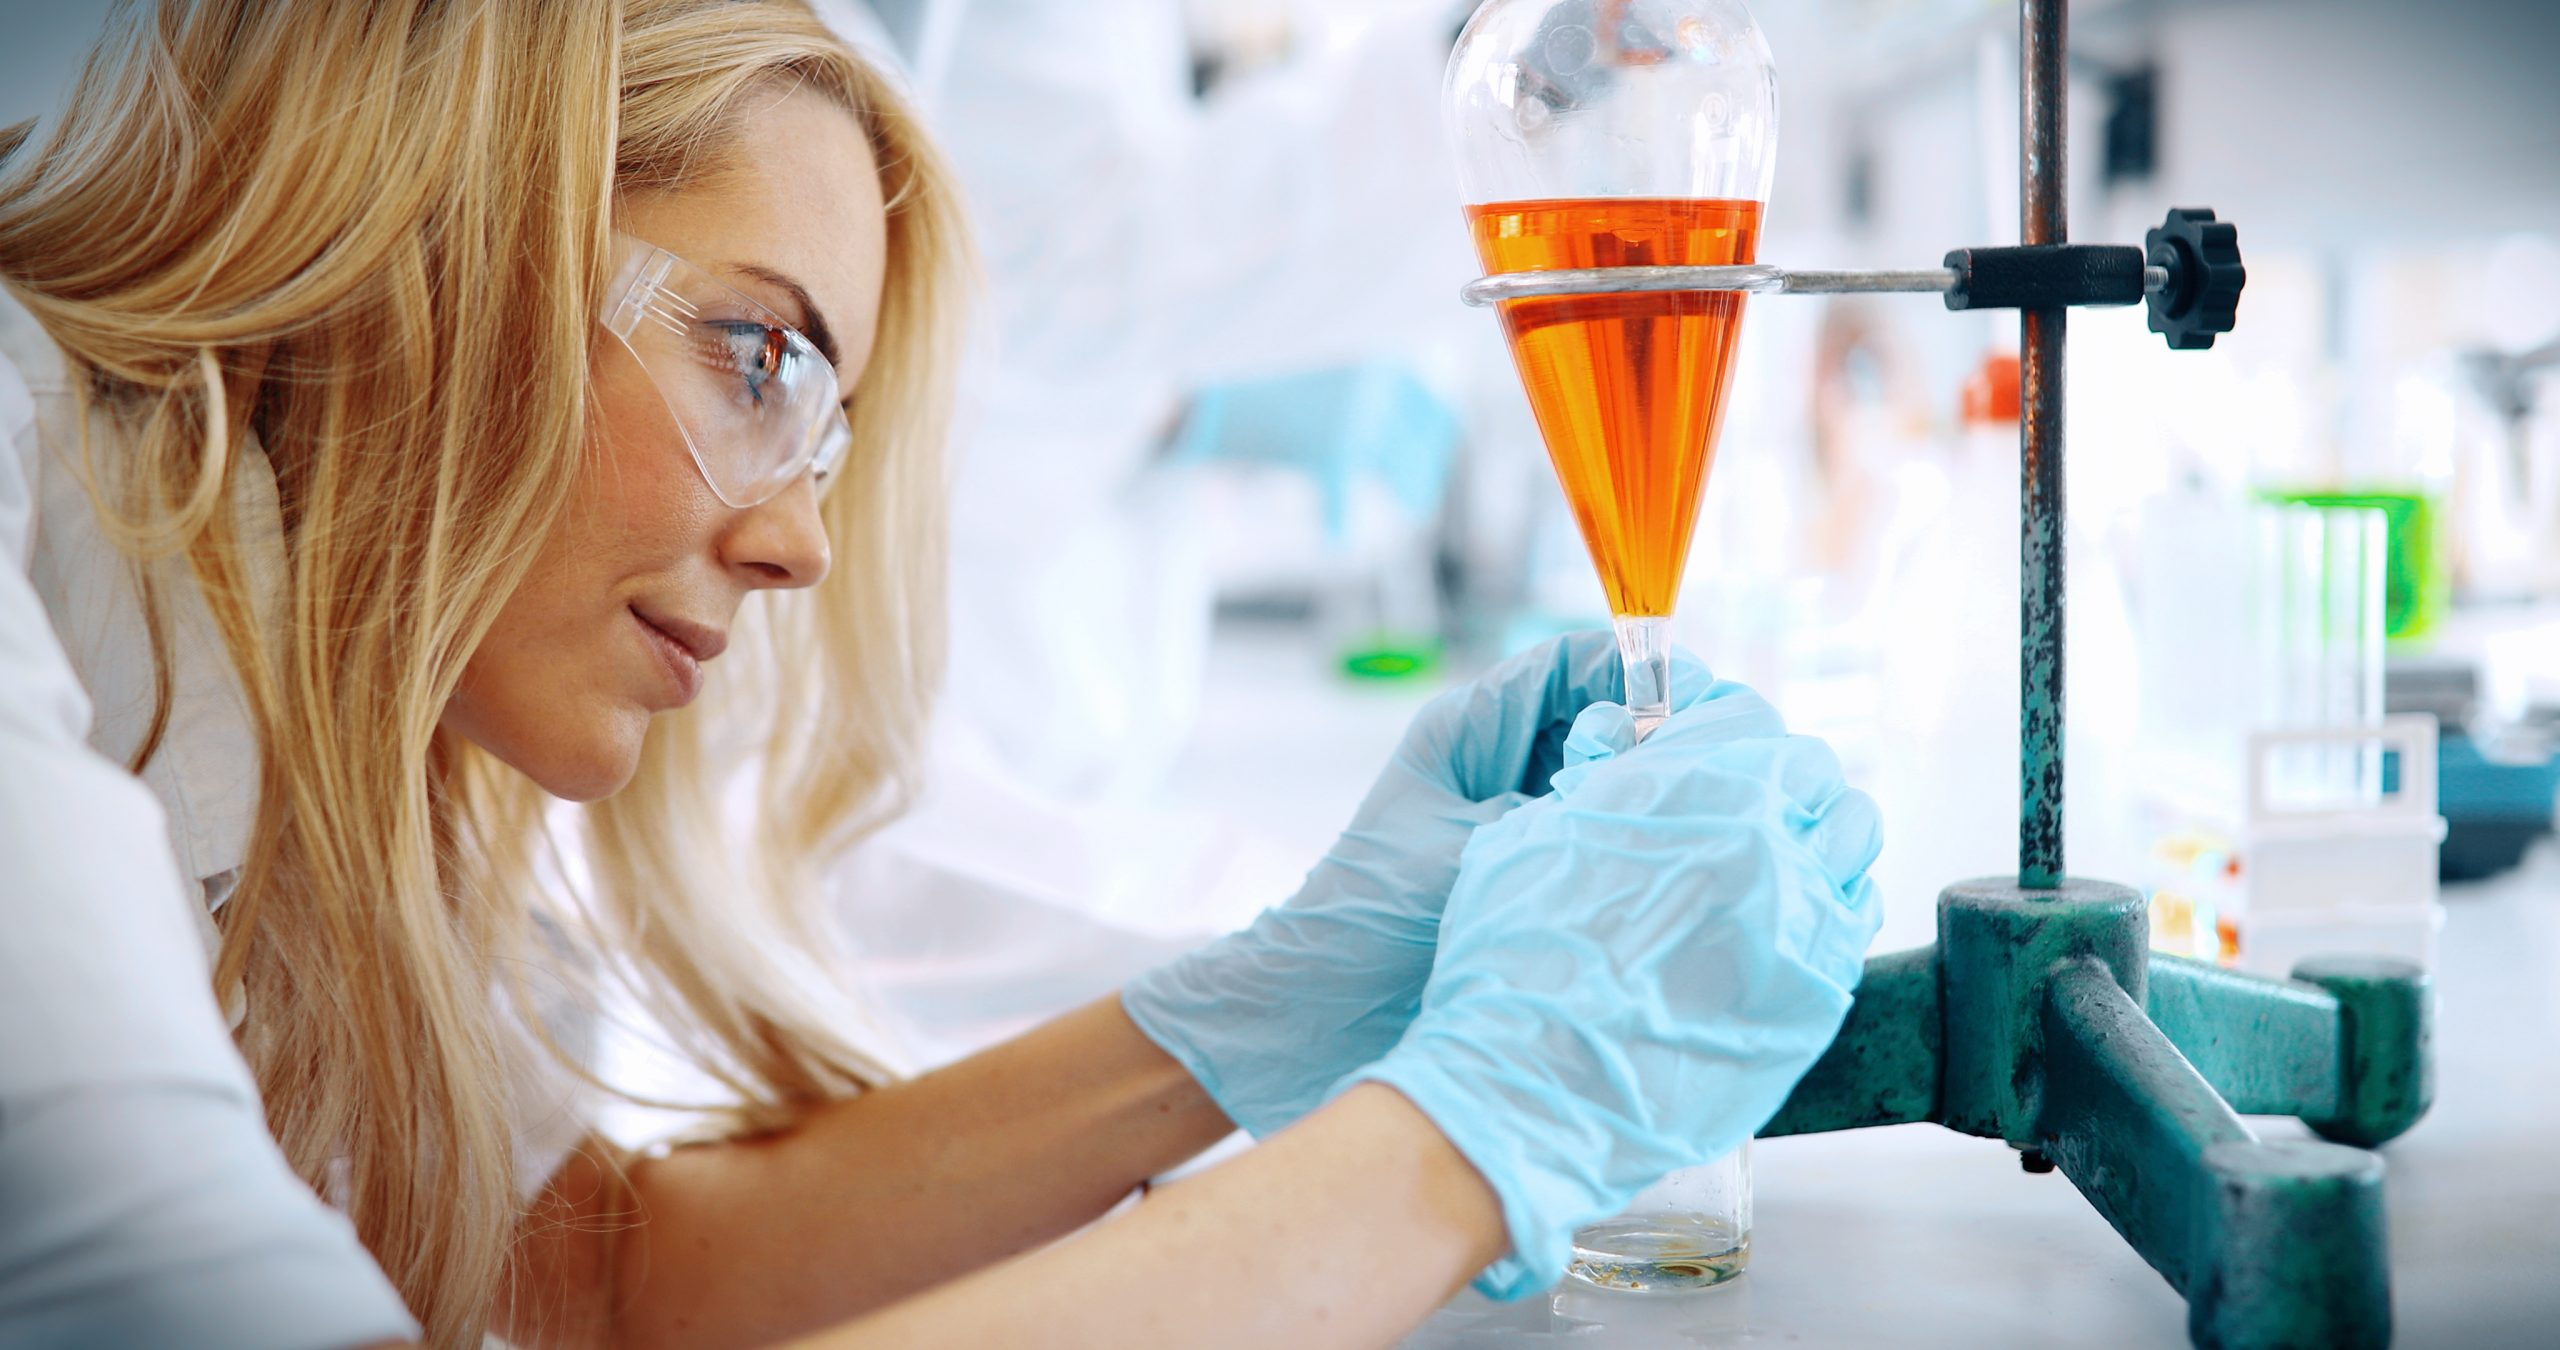 Excellence Of Women and Girls in Science